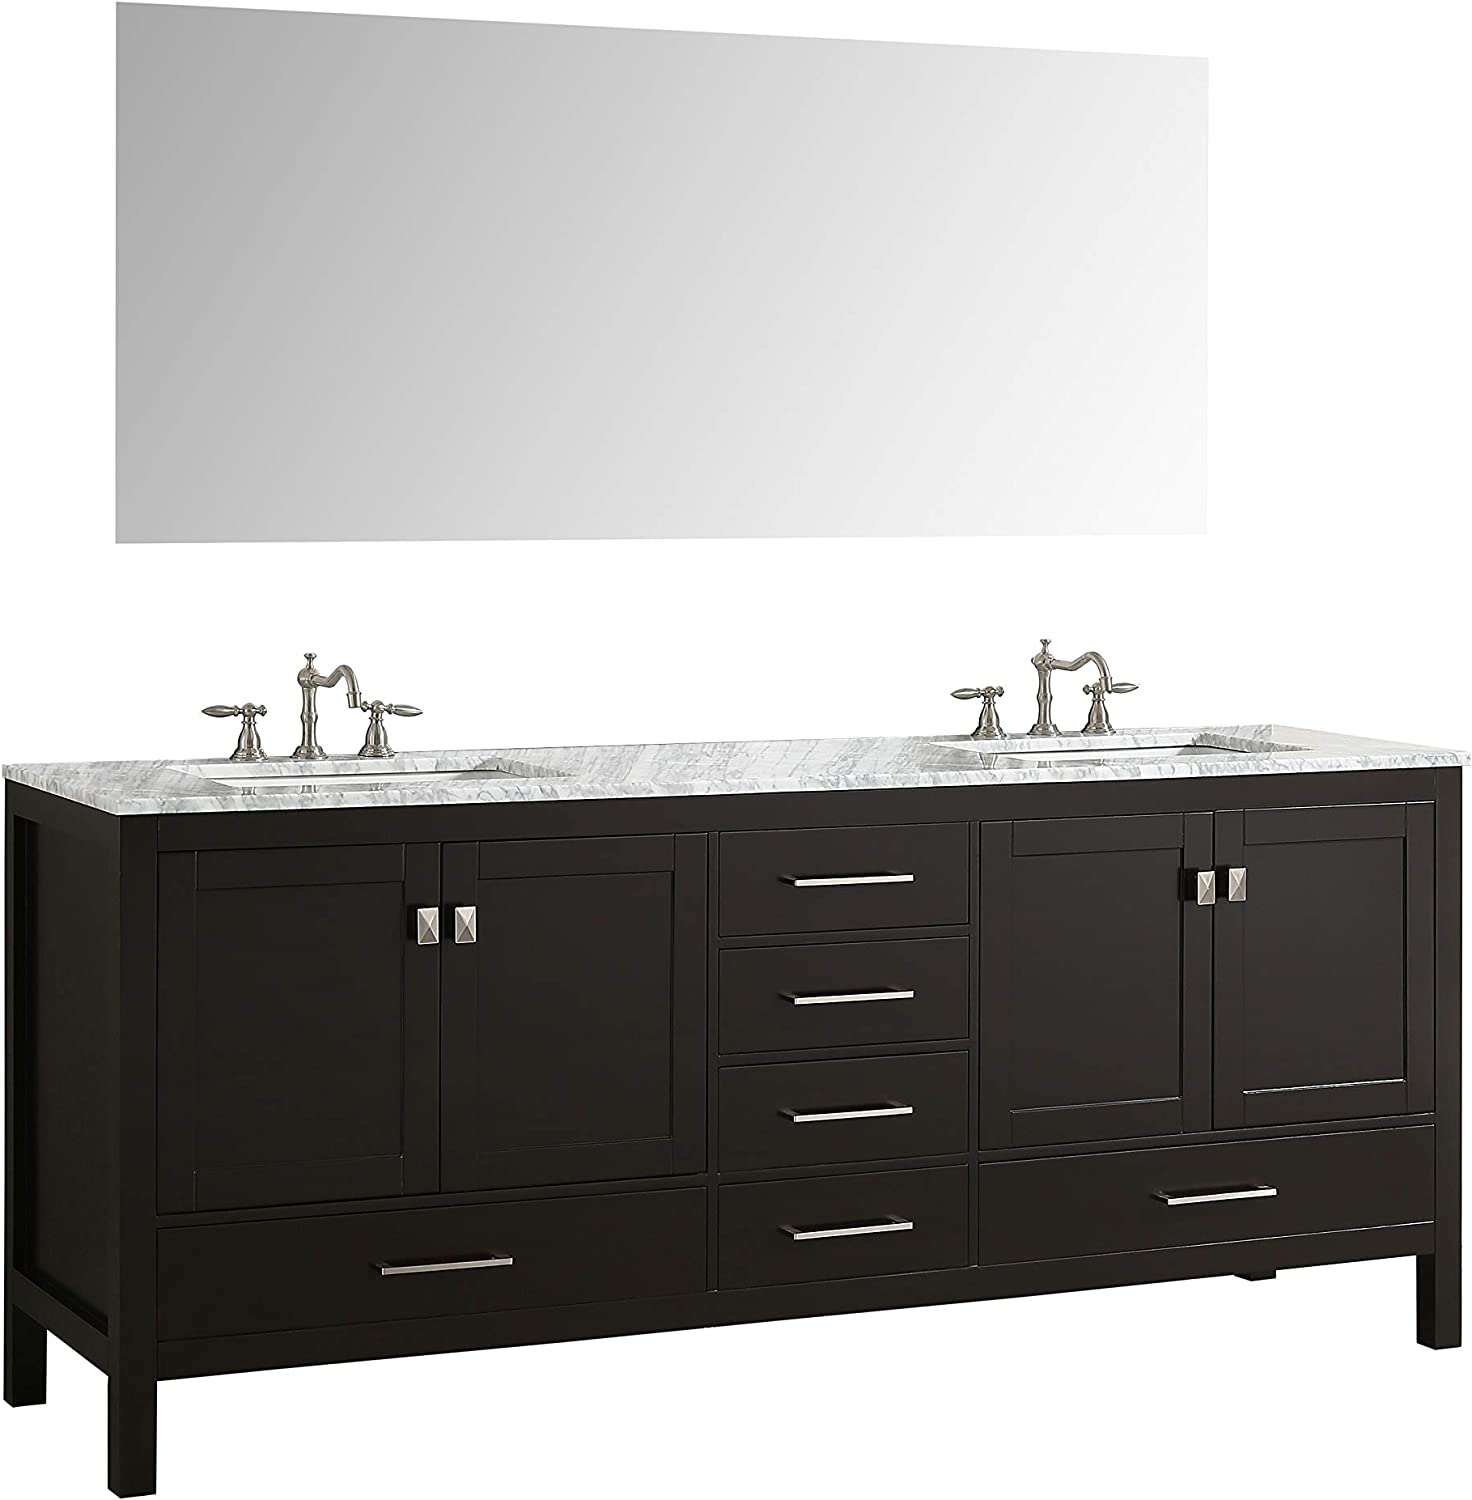 Amazon Com Eviva Aberdeen 84 Inch Espresso Transitional Double Sink Bathroom Vanity With White Carrara Marble Countertop And Undermount Porcelain Sinks Furniture Decor